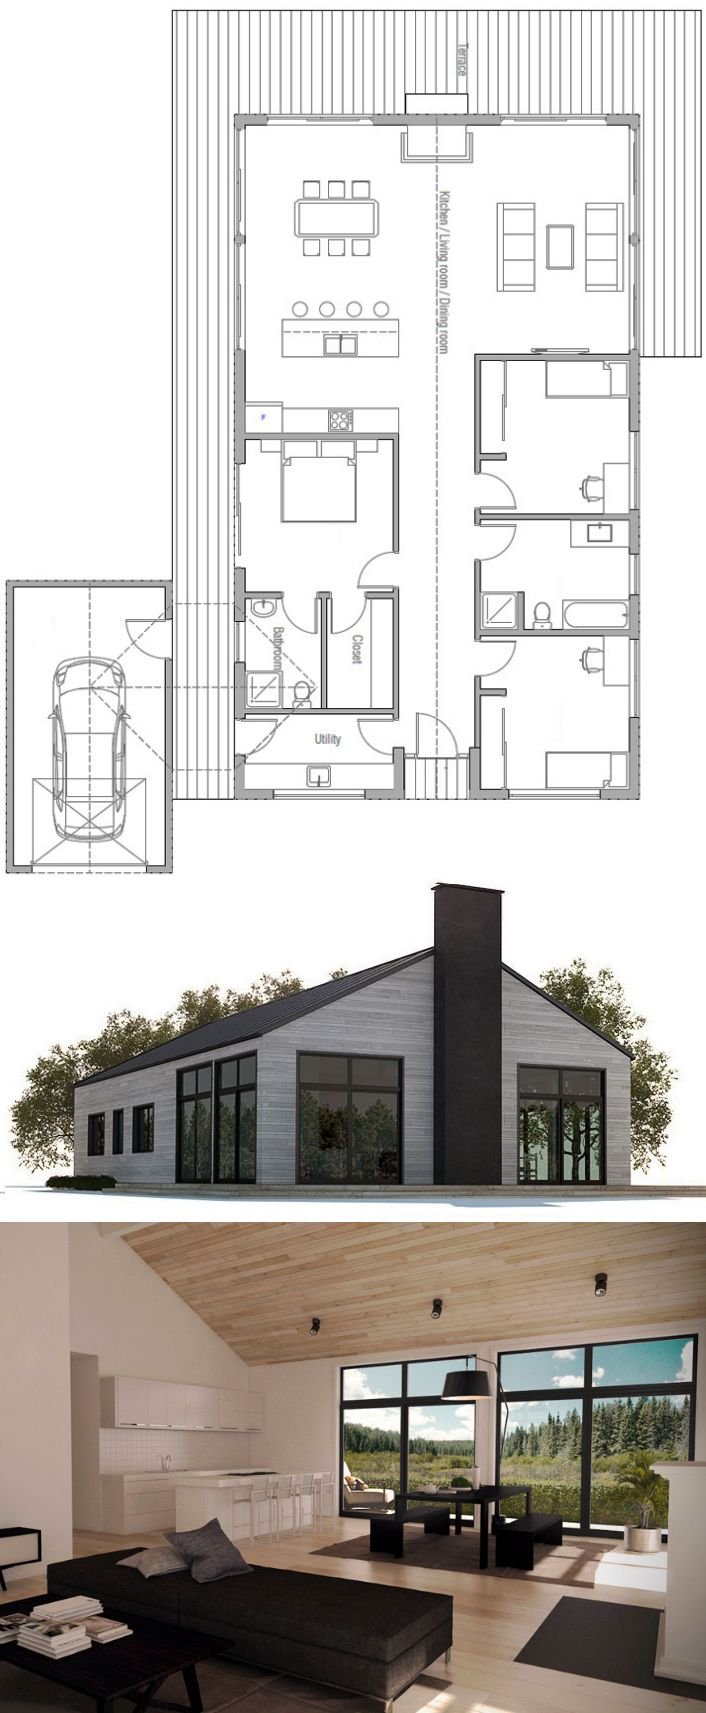 house design small-house-ch232 100